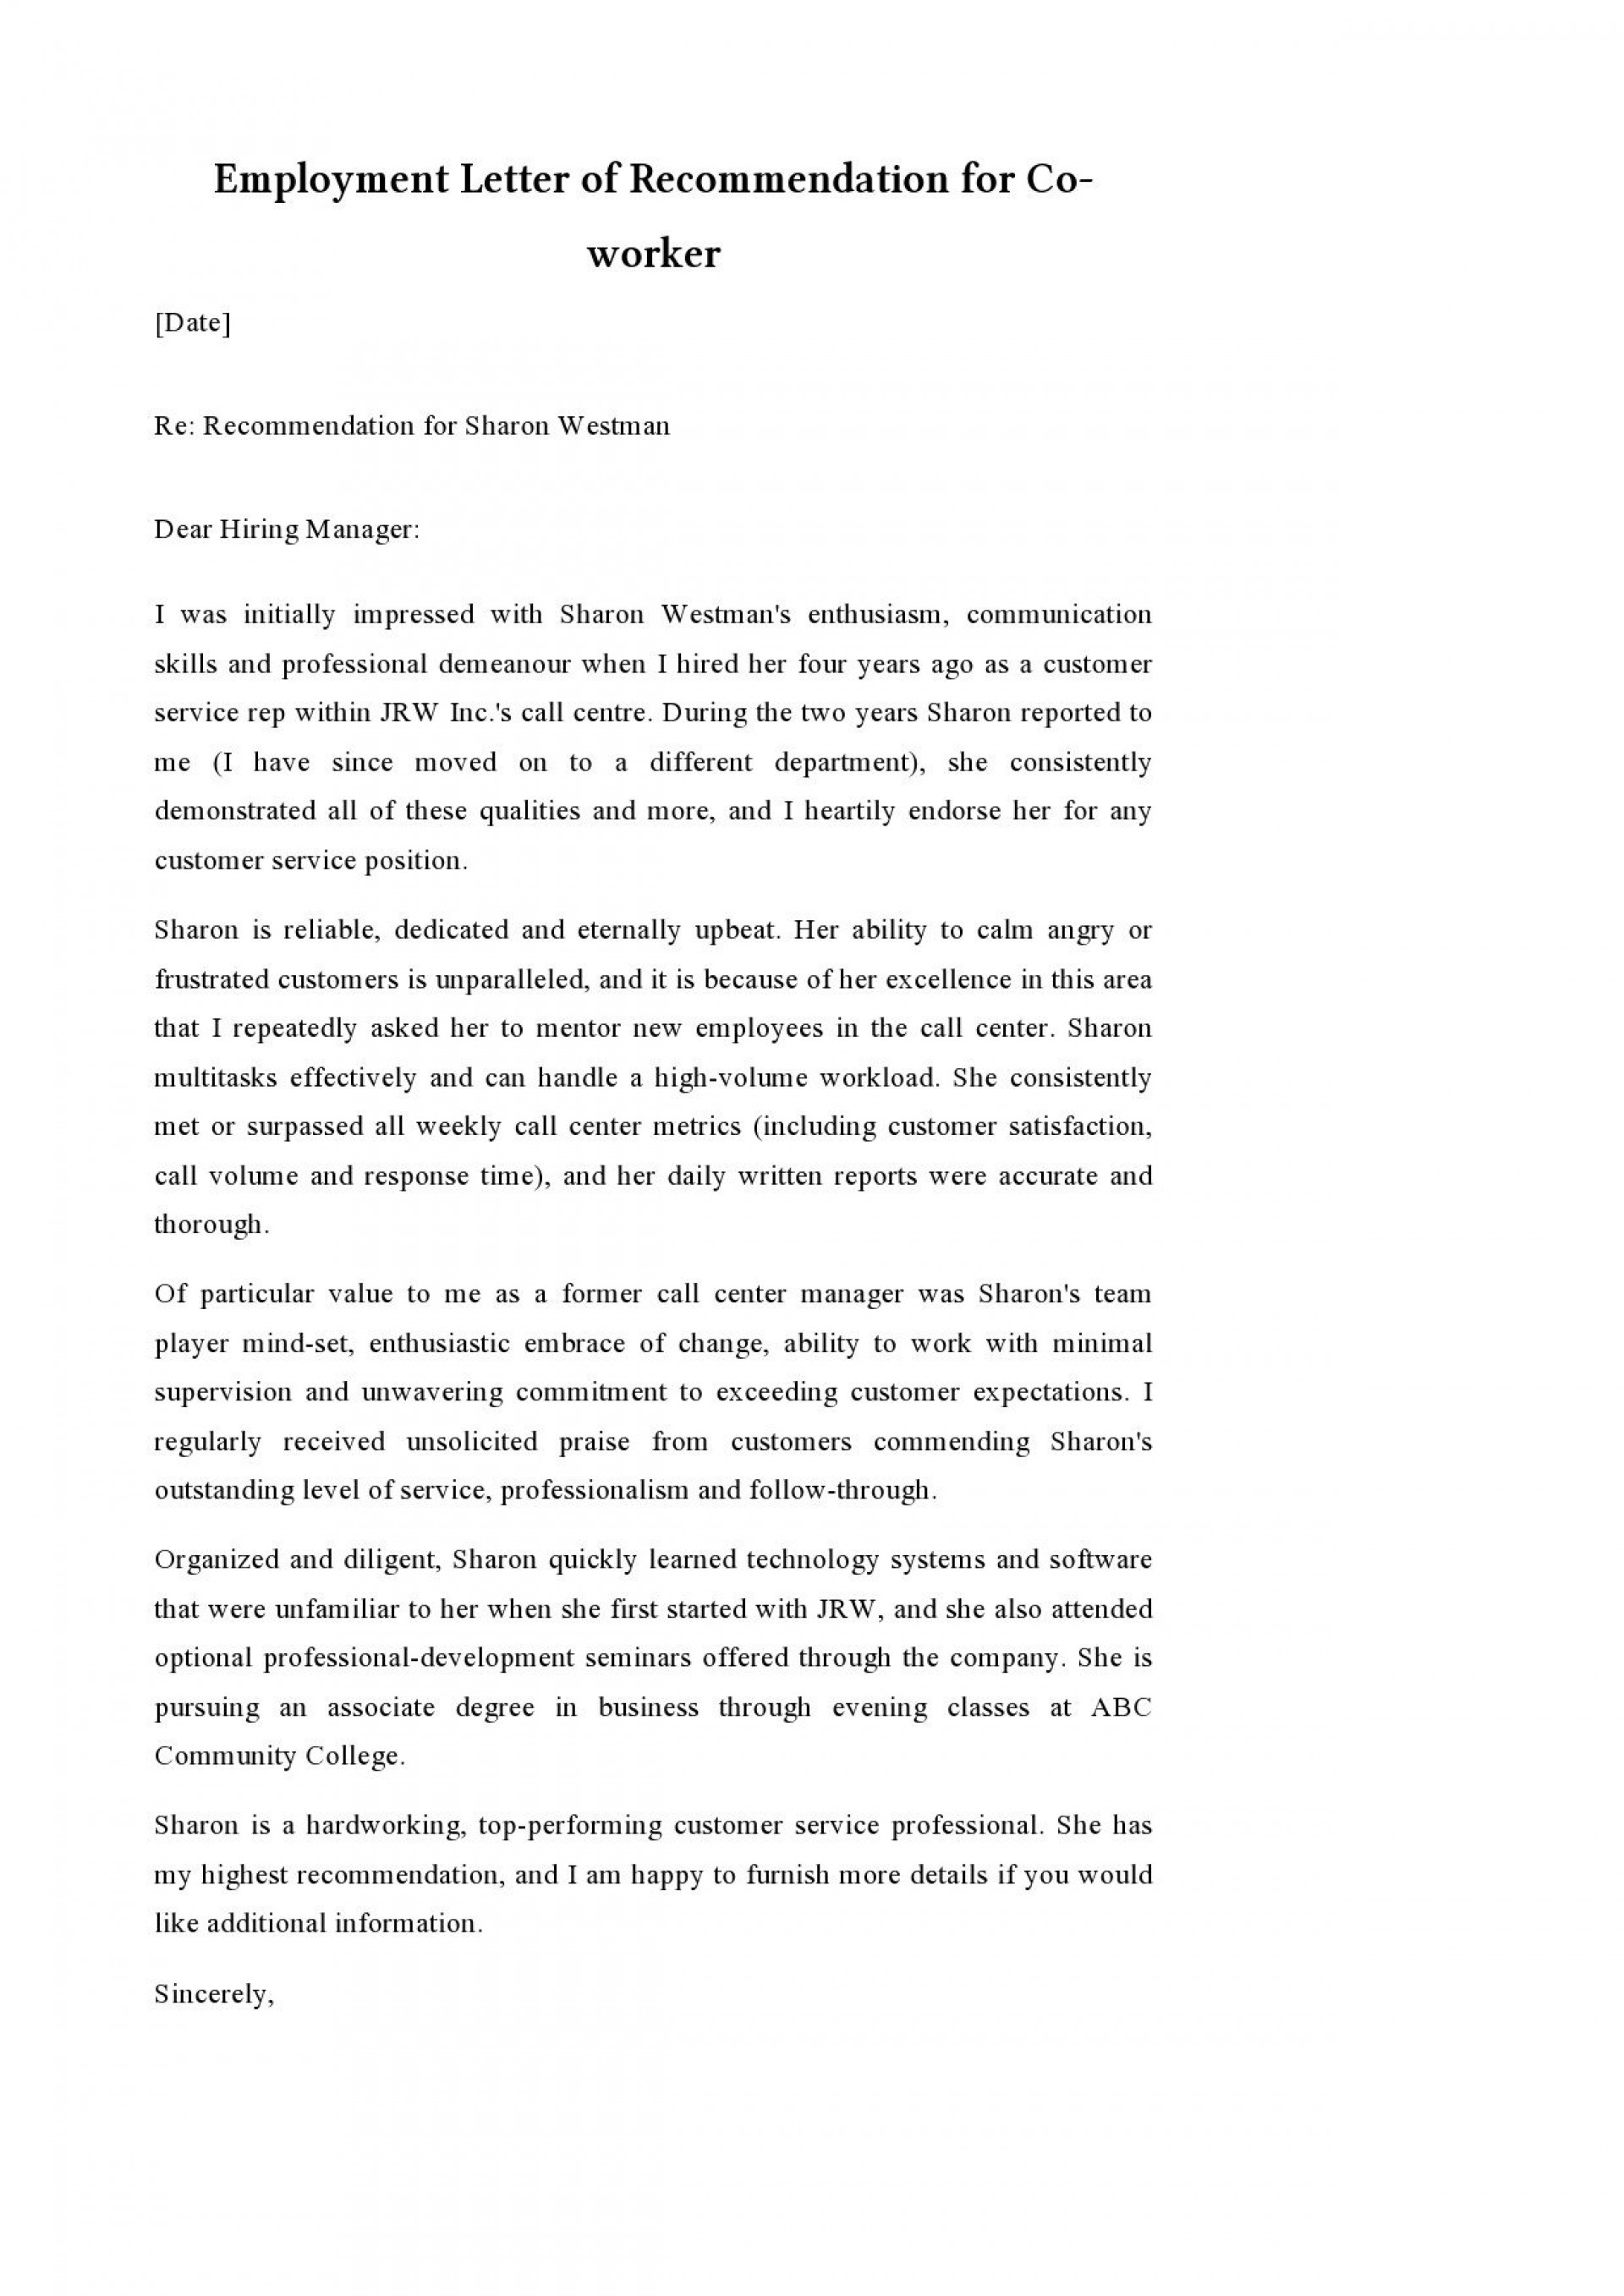 006 Beautiful Format For Letter Of Recommendation Sample Highest Quality  Samples1920